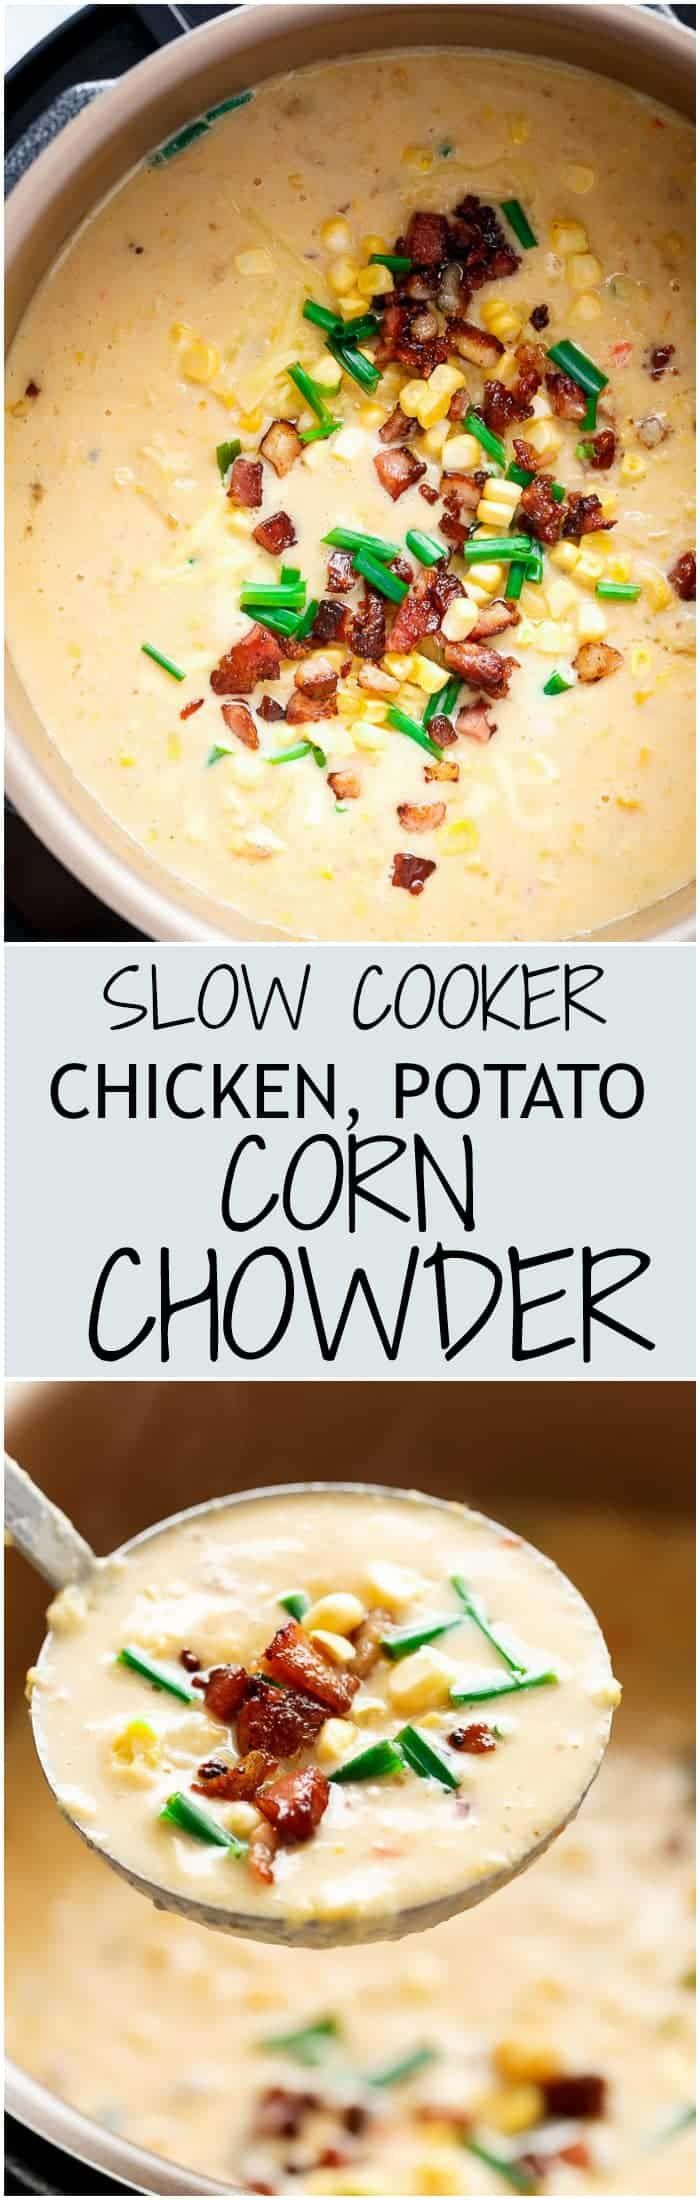 A Slow Cooker Chicken Potato Corn Chowder with crispy bacon pieces and mozzarella cheese! As simple as throwing ingredients into a slow cooker and letting it cook for you! (No Cream and Dairy Free Options!) | https://cafedelites.com